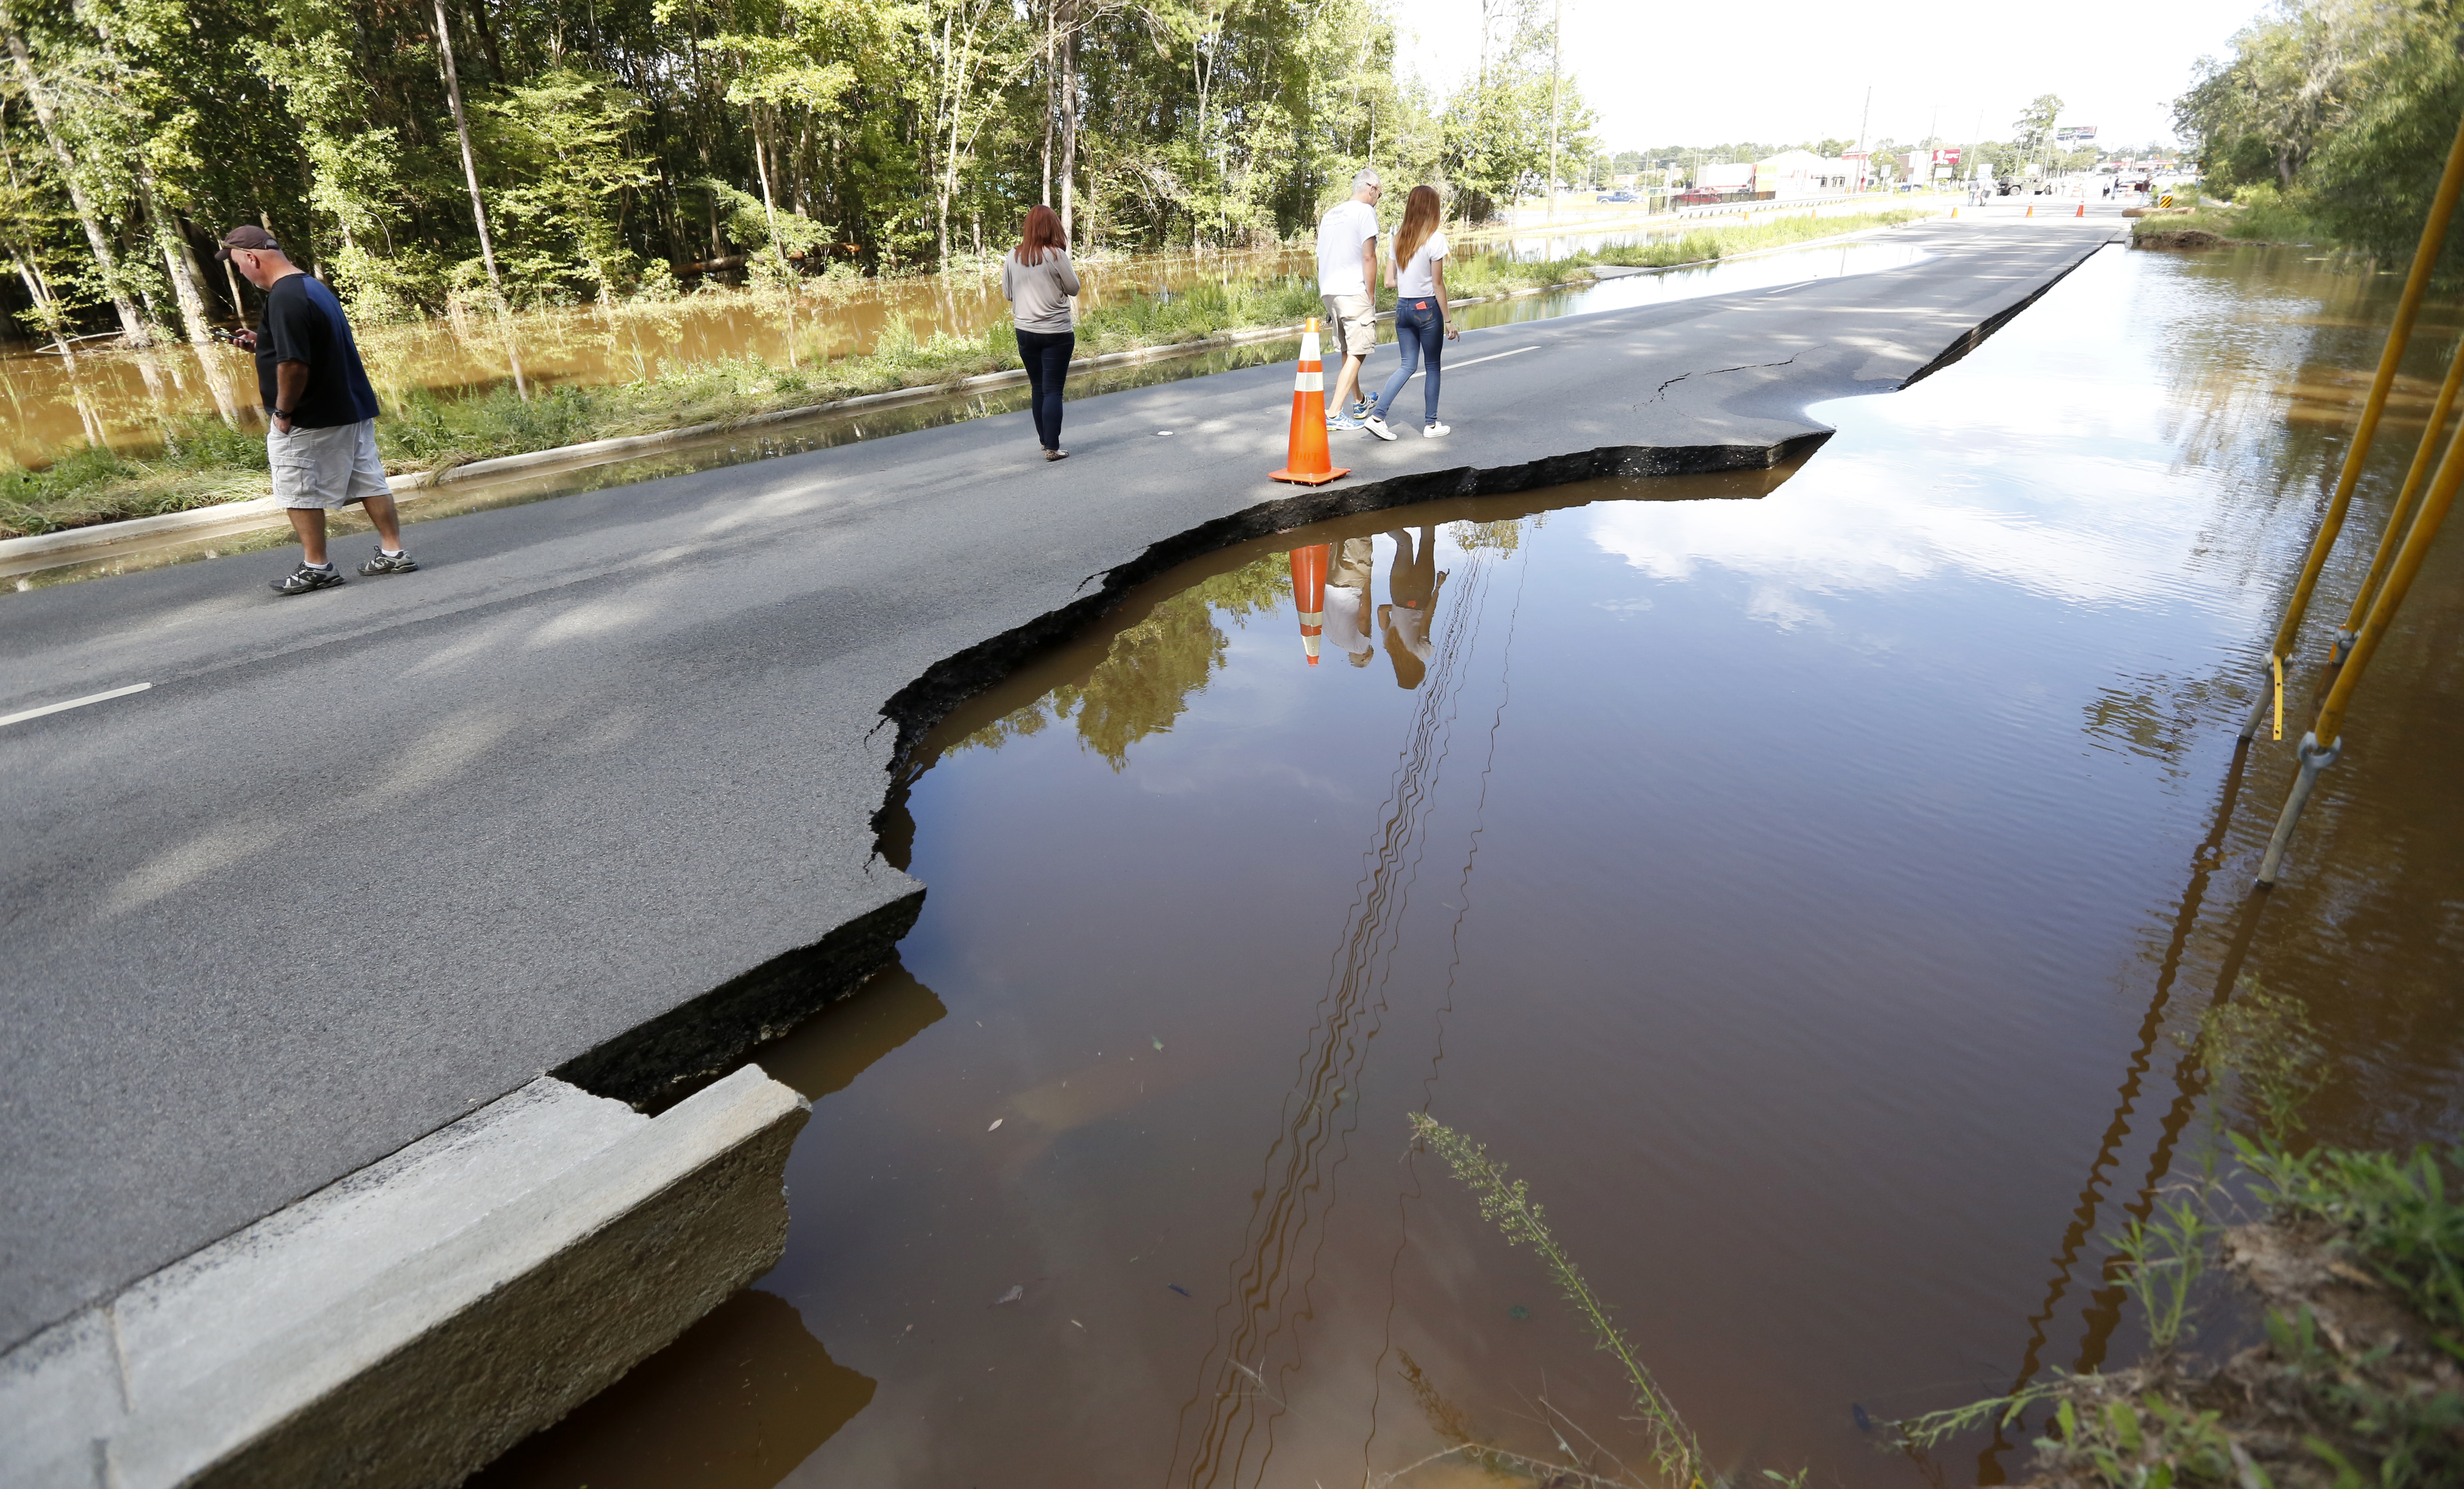 Pedestrians walk down Dorchester Road at Sawmill Branch Canal as it begins to wash away due to floodwaters near Summerville, S.C., Oct. 6, 2015. Residents are concerned that the Ashley river will continue to rise as floodwaters come down from Columbi...